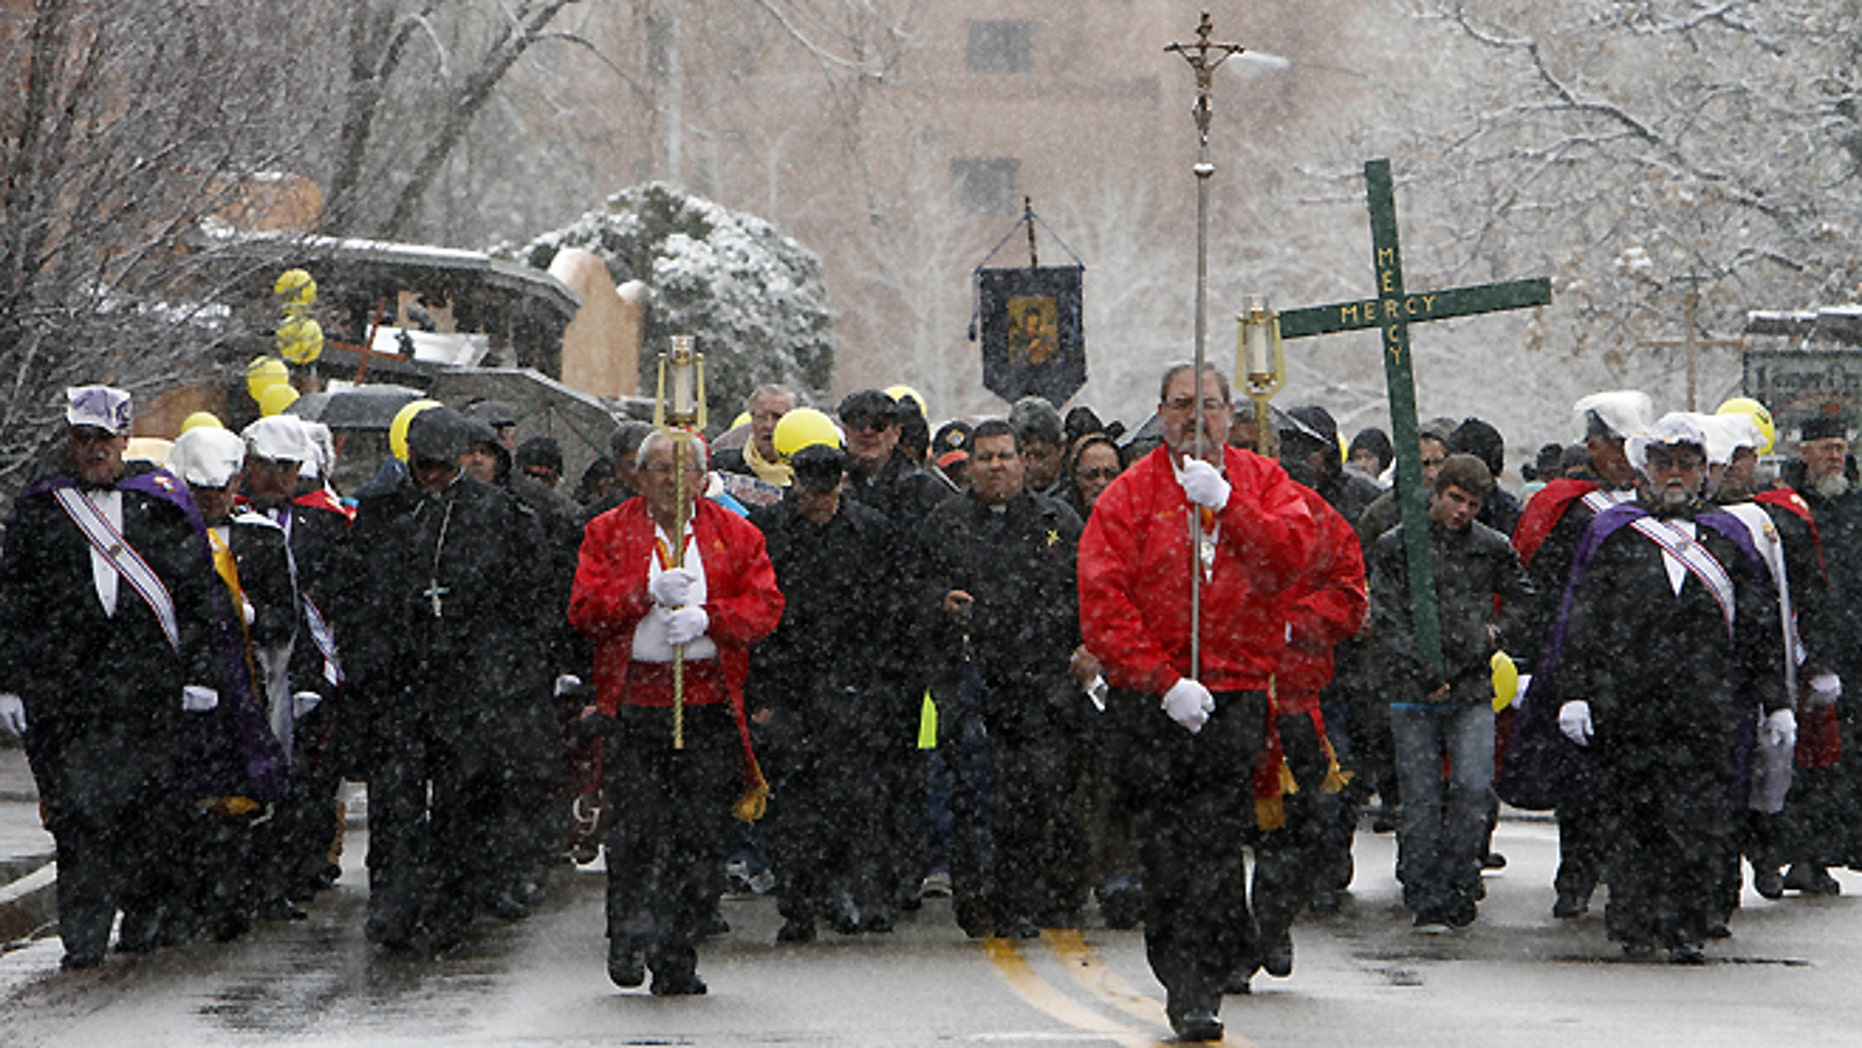 Jan. 21, 2015: A pro-life march near the State Capitol in Santa Fe, N.M.